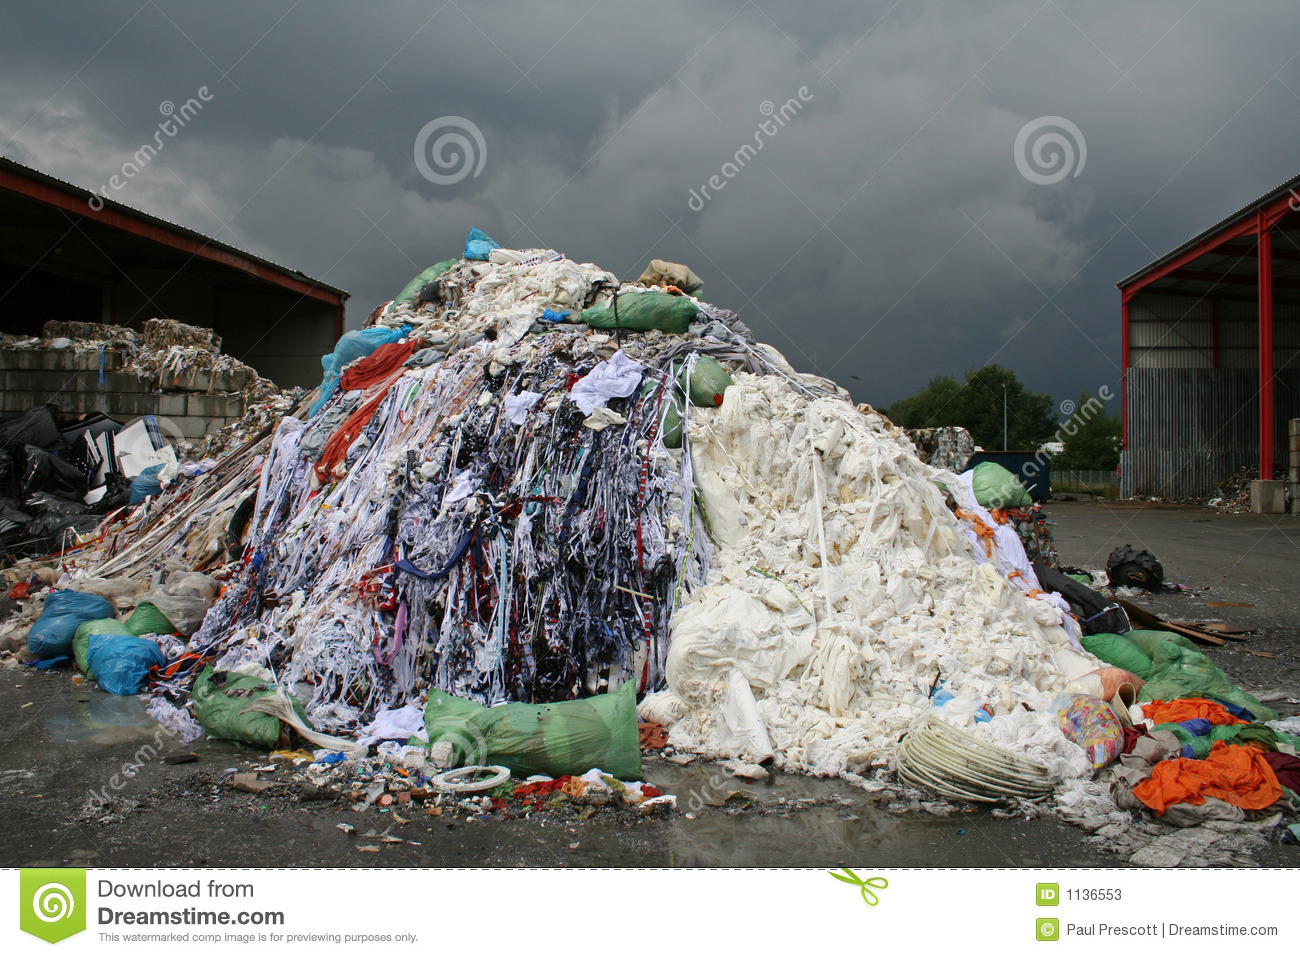 Waste material stock photos image 1136553 for Waste material video